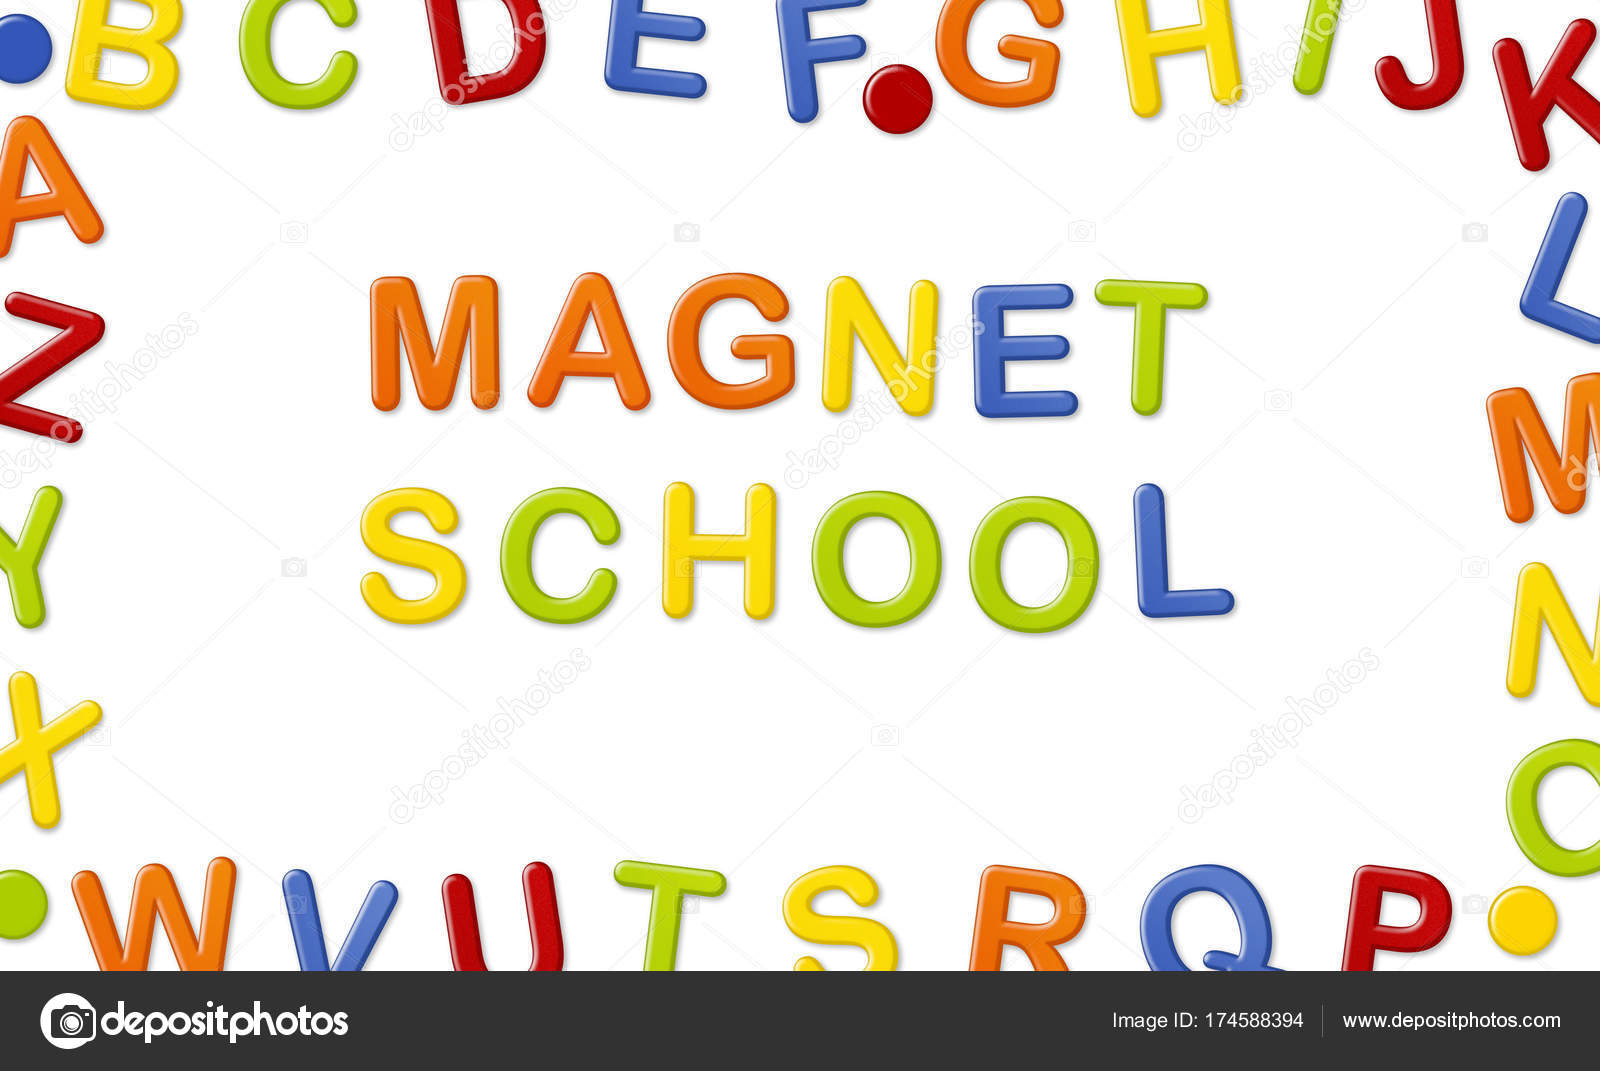 educational systems made out of fridge magnet letters isolated on white background magnet school